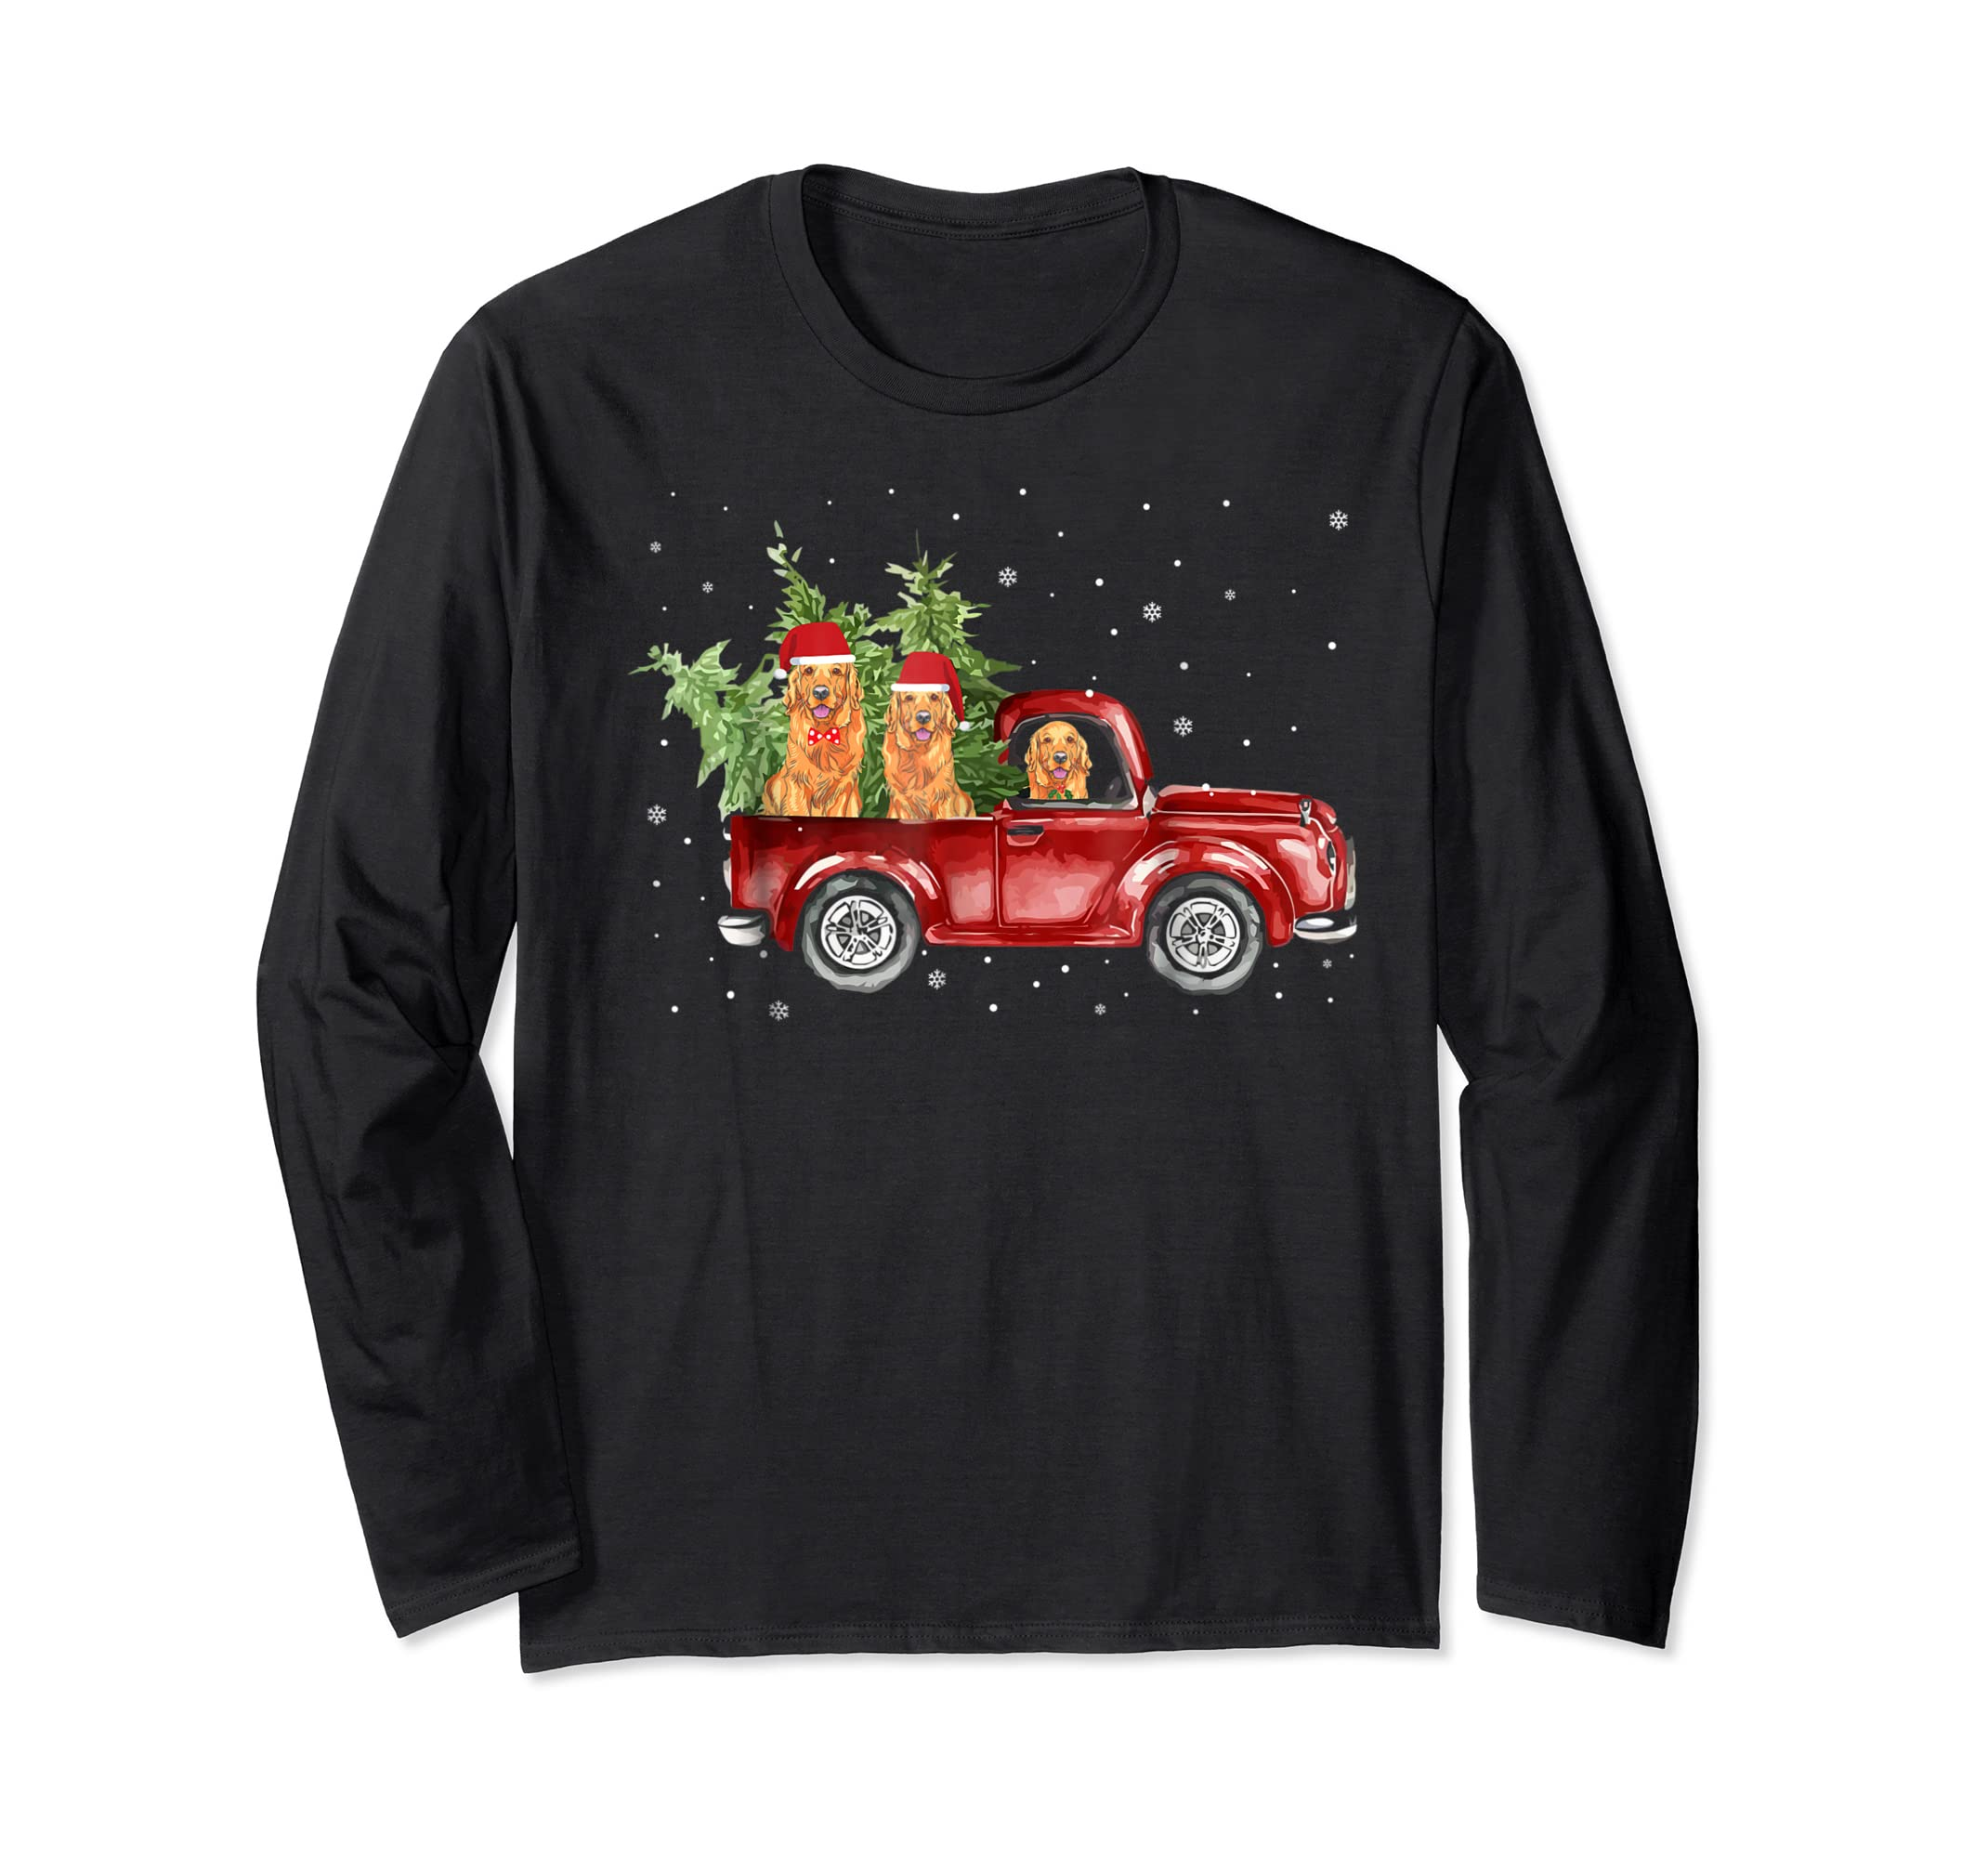 Golden Retriever Pickup Truck Christmas Tshirt-Long Sleeve-Black